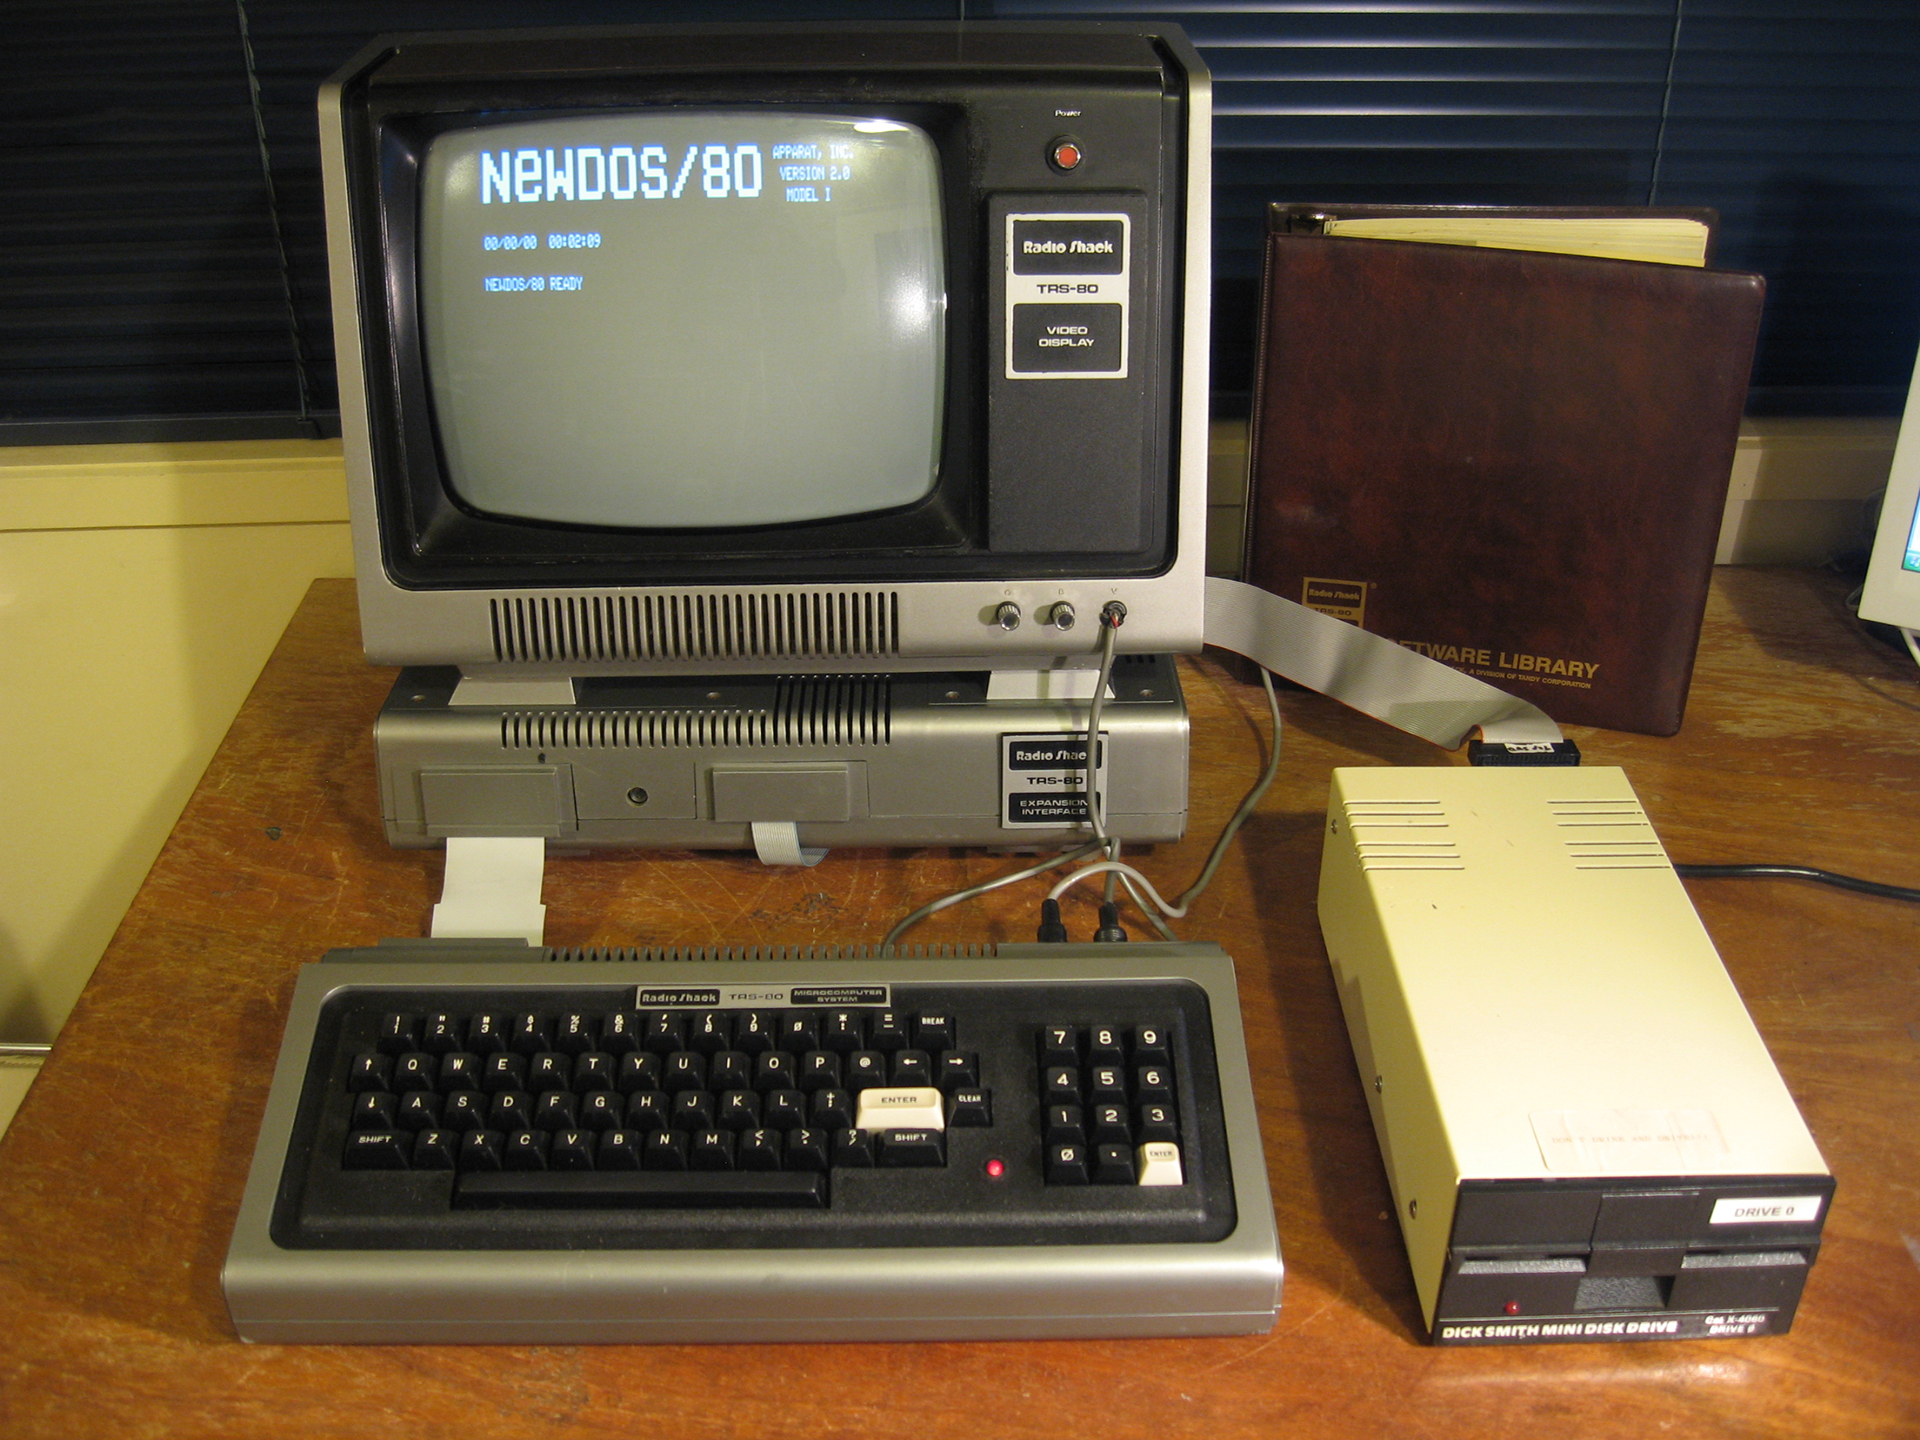 Show us your Tandy Computers! - Page 3